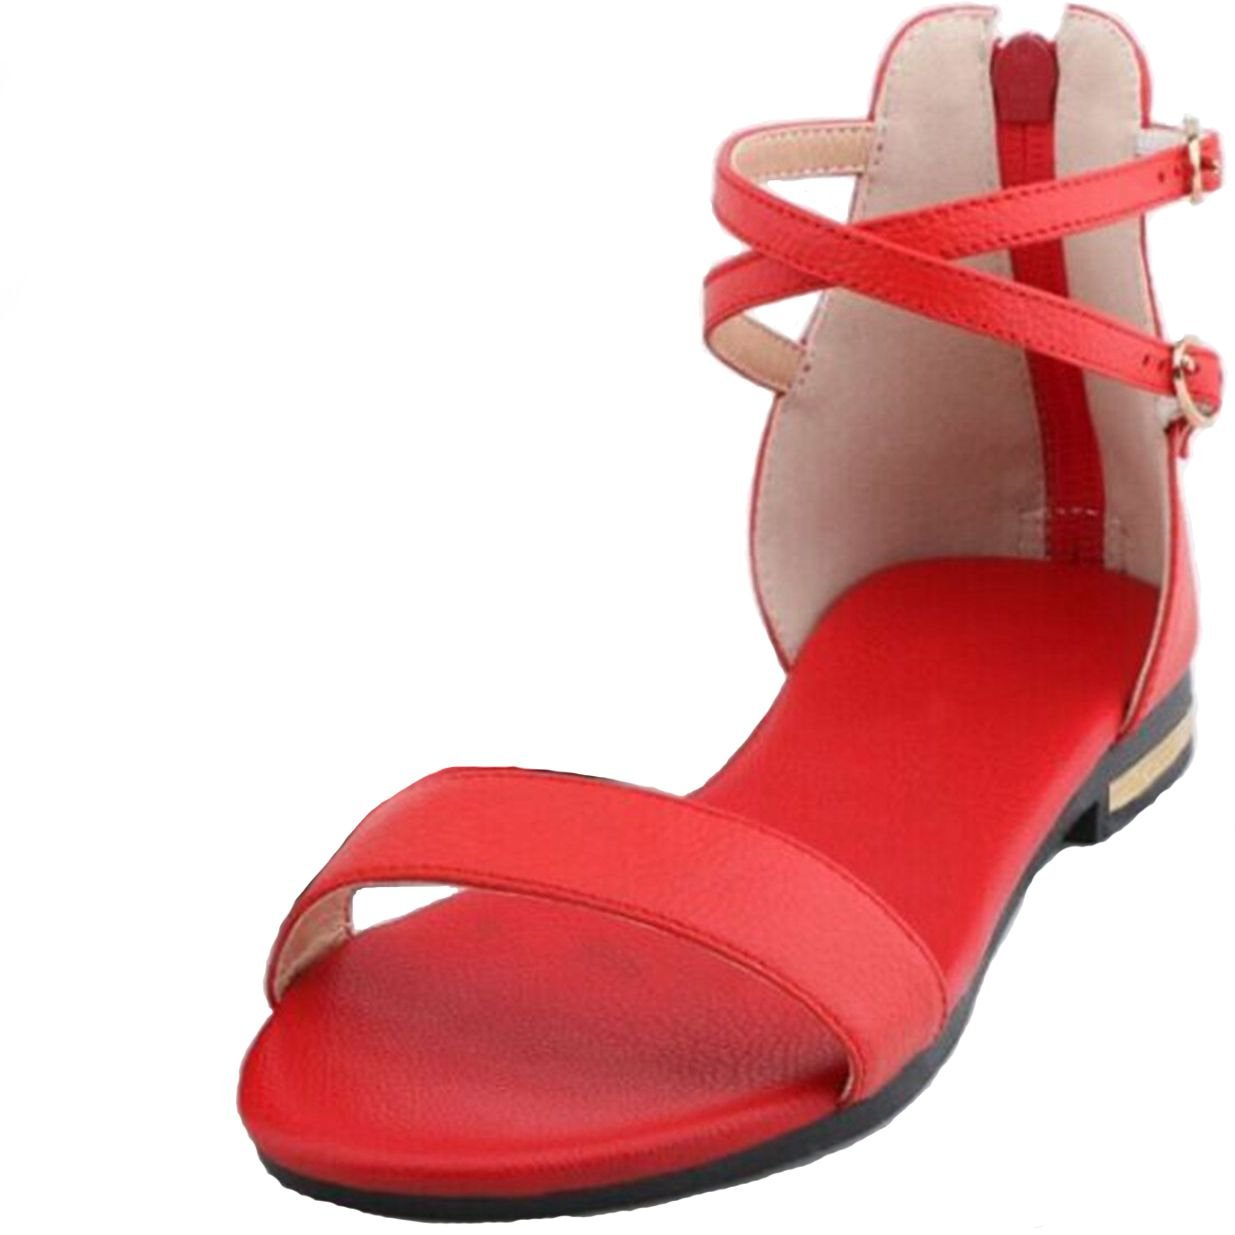 VIMISAOI Women's Leather Buckle Strap Summer Open Toe Ankle Strap Zip Casual Flat Sandals Shoes B0794PVHP9 9.5 B(M) US|Red